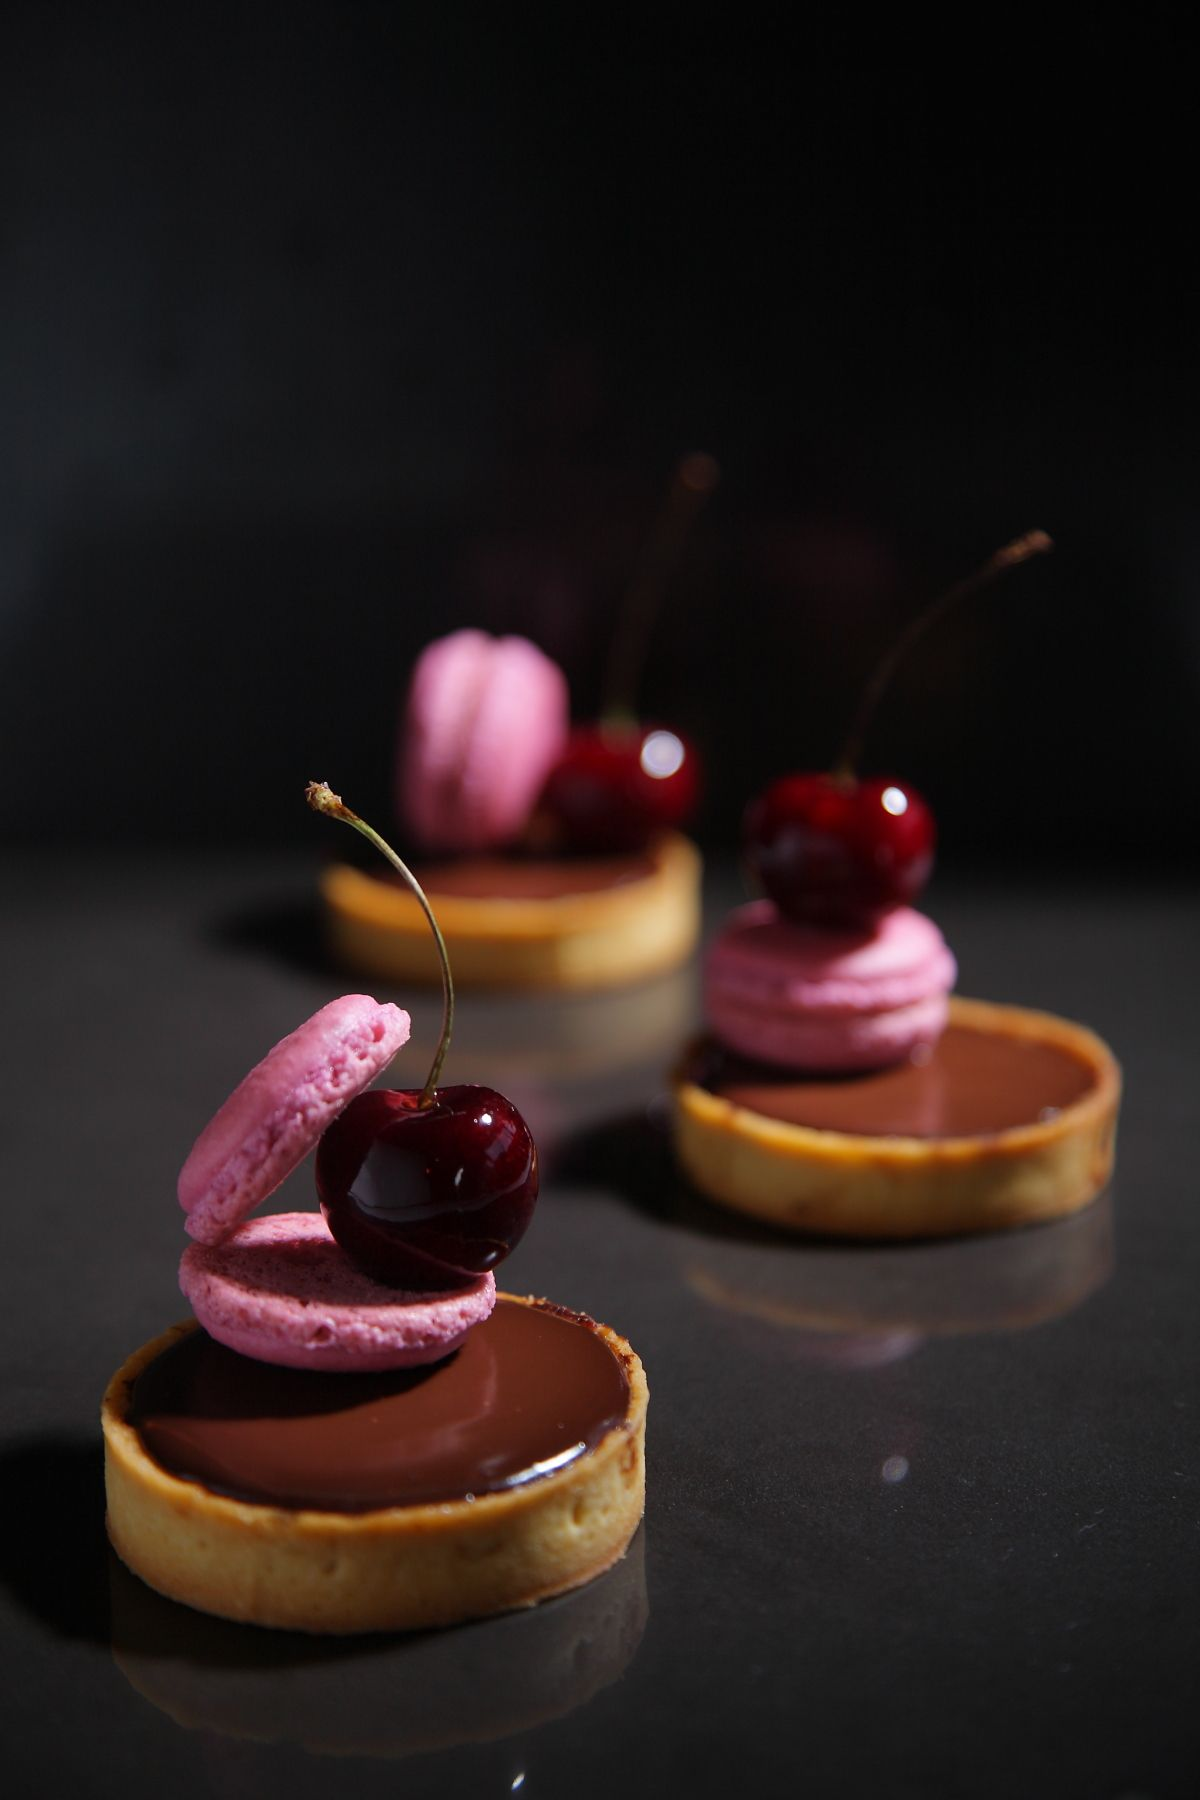 No description so w/ my culinary instincts, I'd say this is a dark chocolate tartlet w/ bing cherry macaroons, maybe flavored with hazelnuts, spiked with some kind of nut or flavored liquer